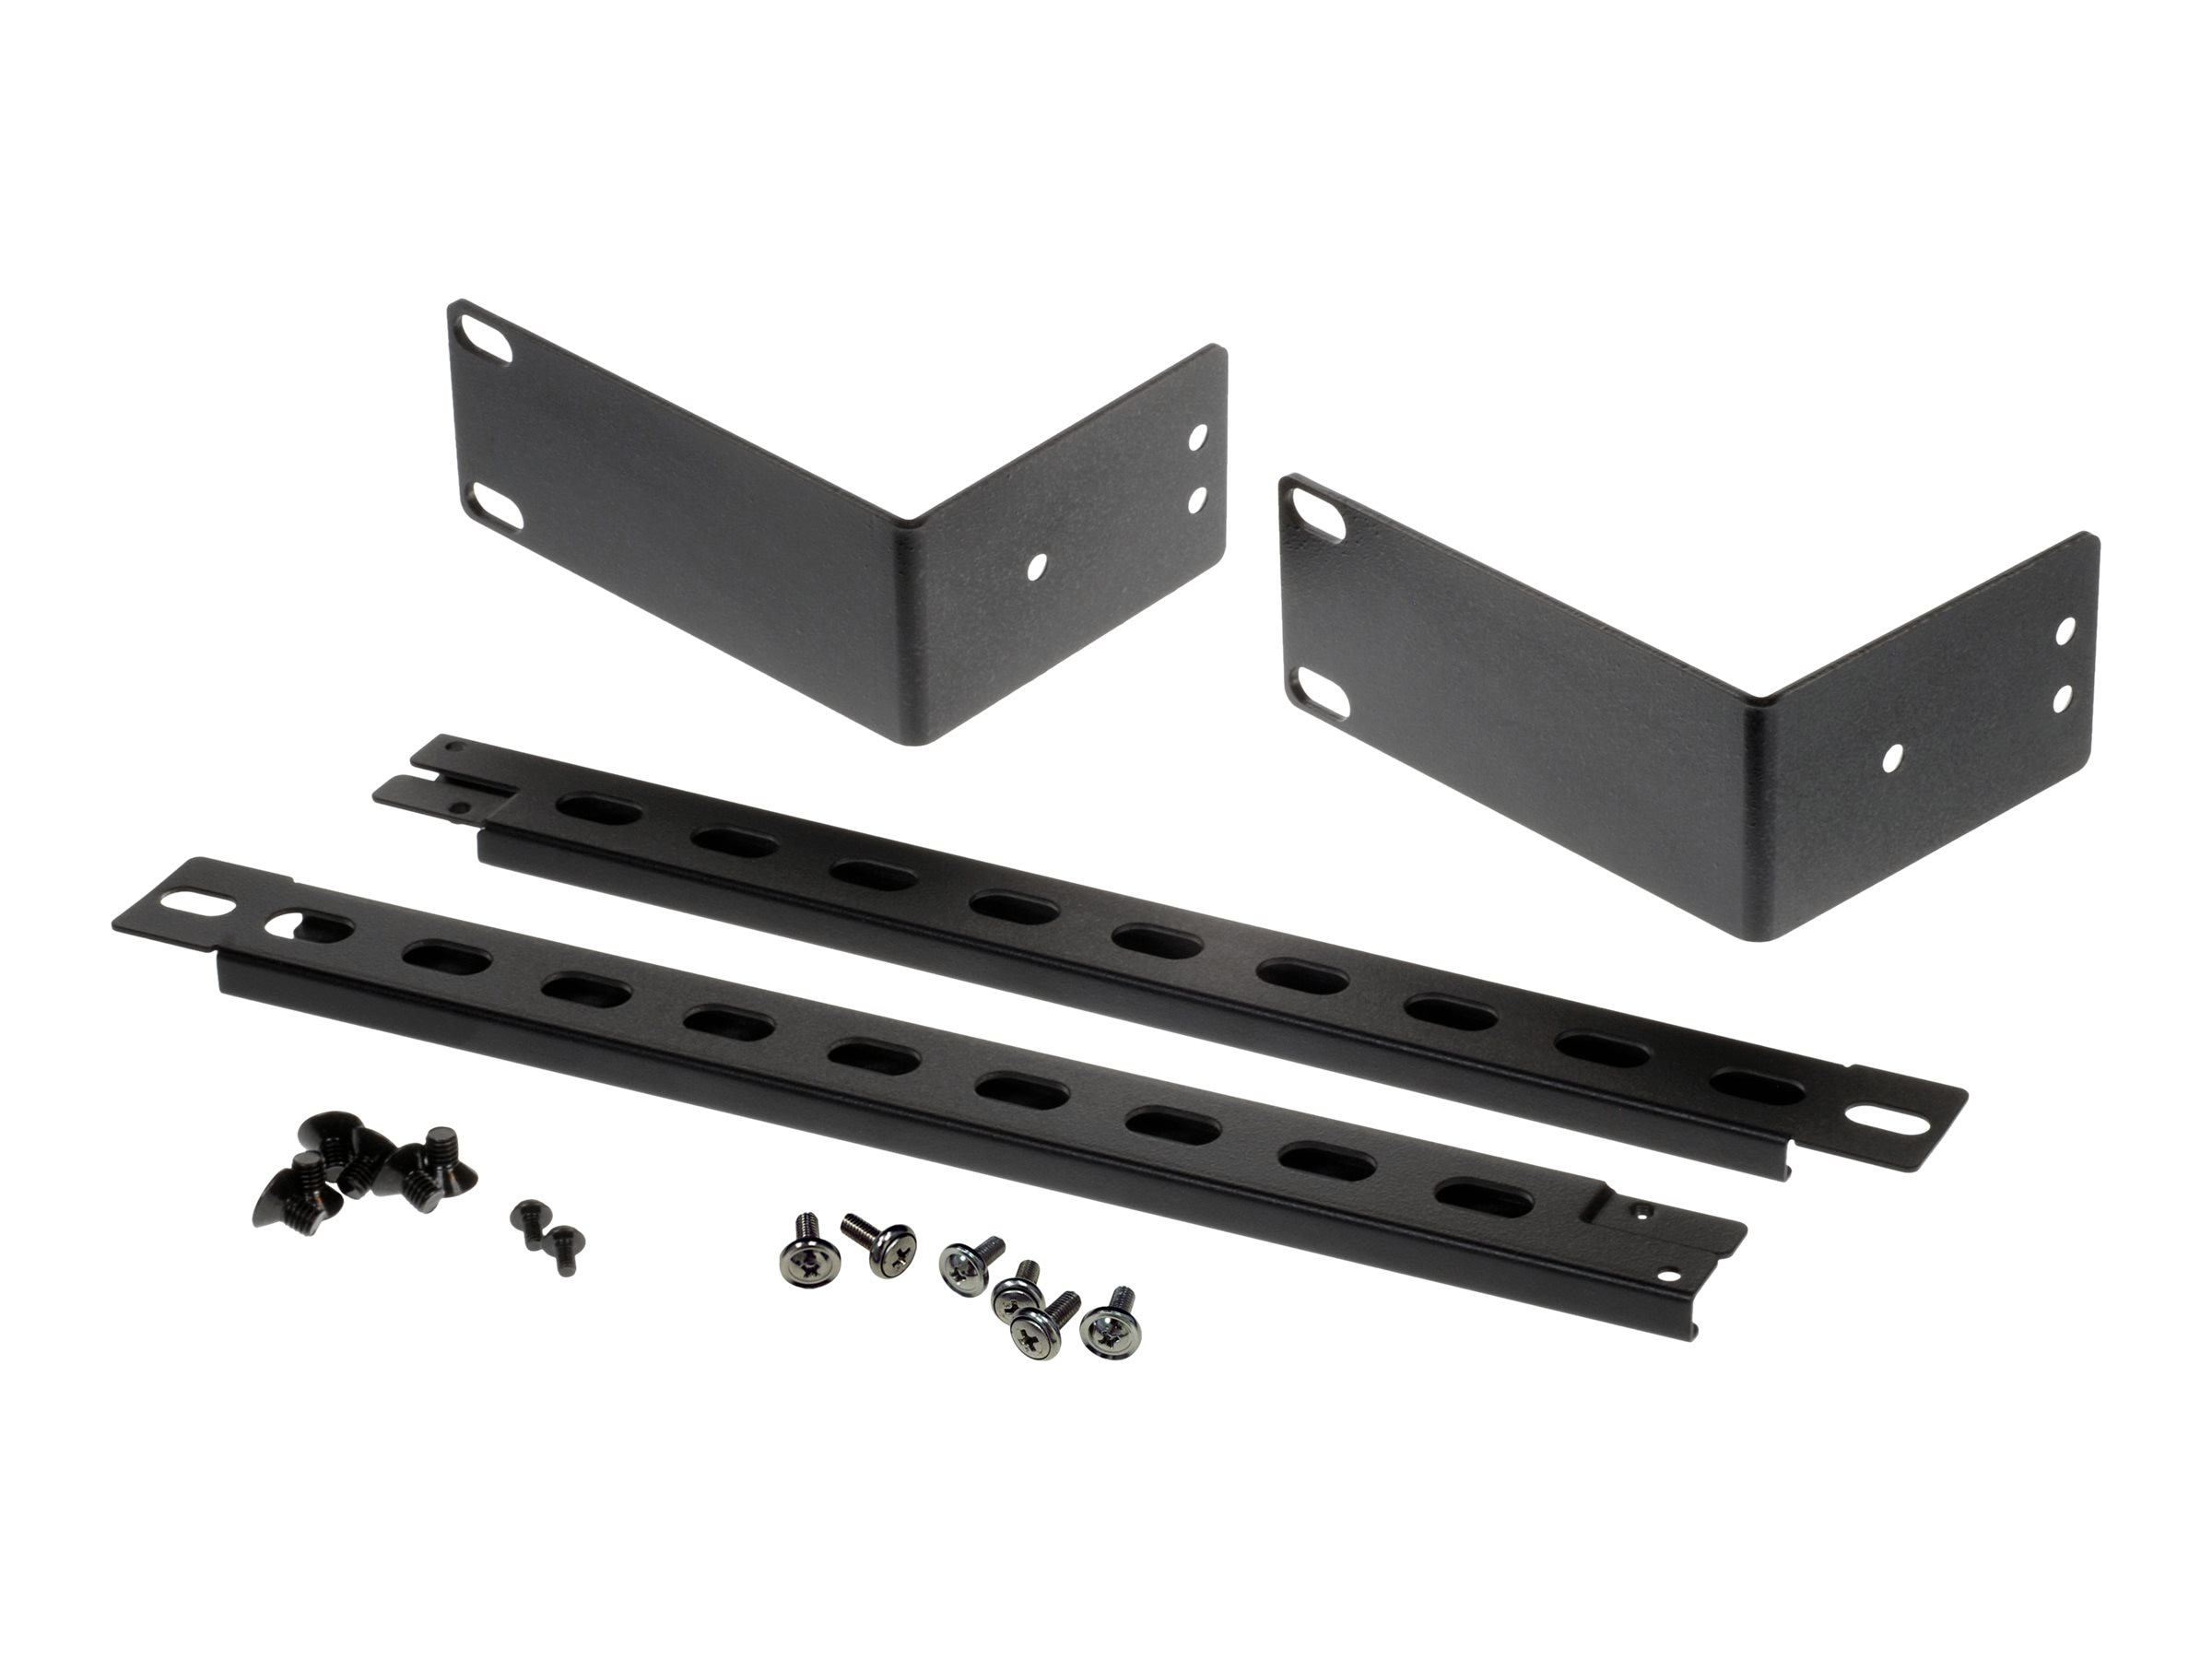 Connectpro Rackmount Kit, 1U x 19 for 4-port KVM Switches UR-14, UR-14+, PR-14, UD-14+